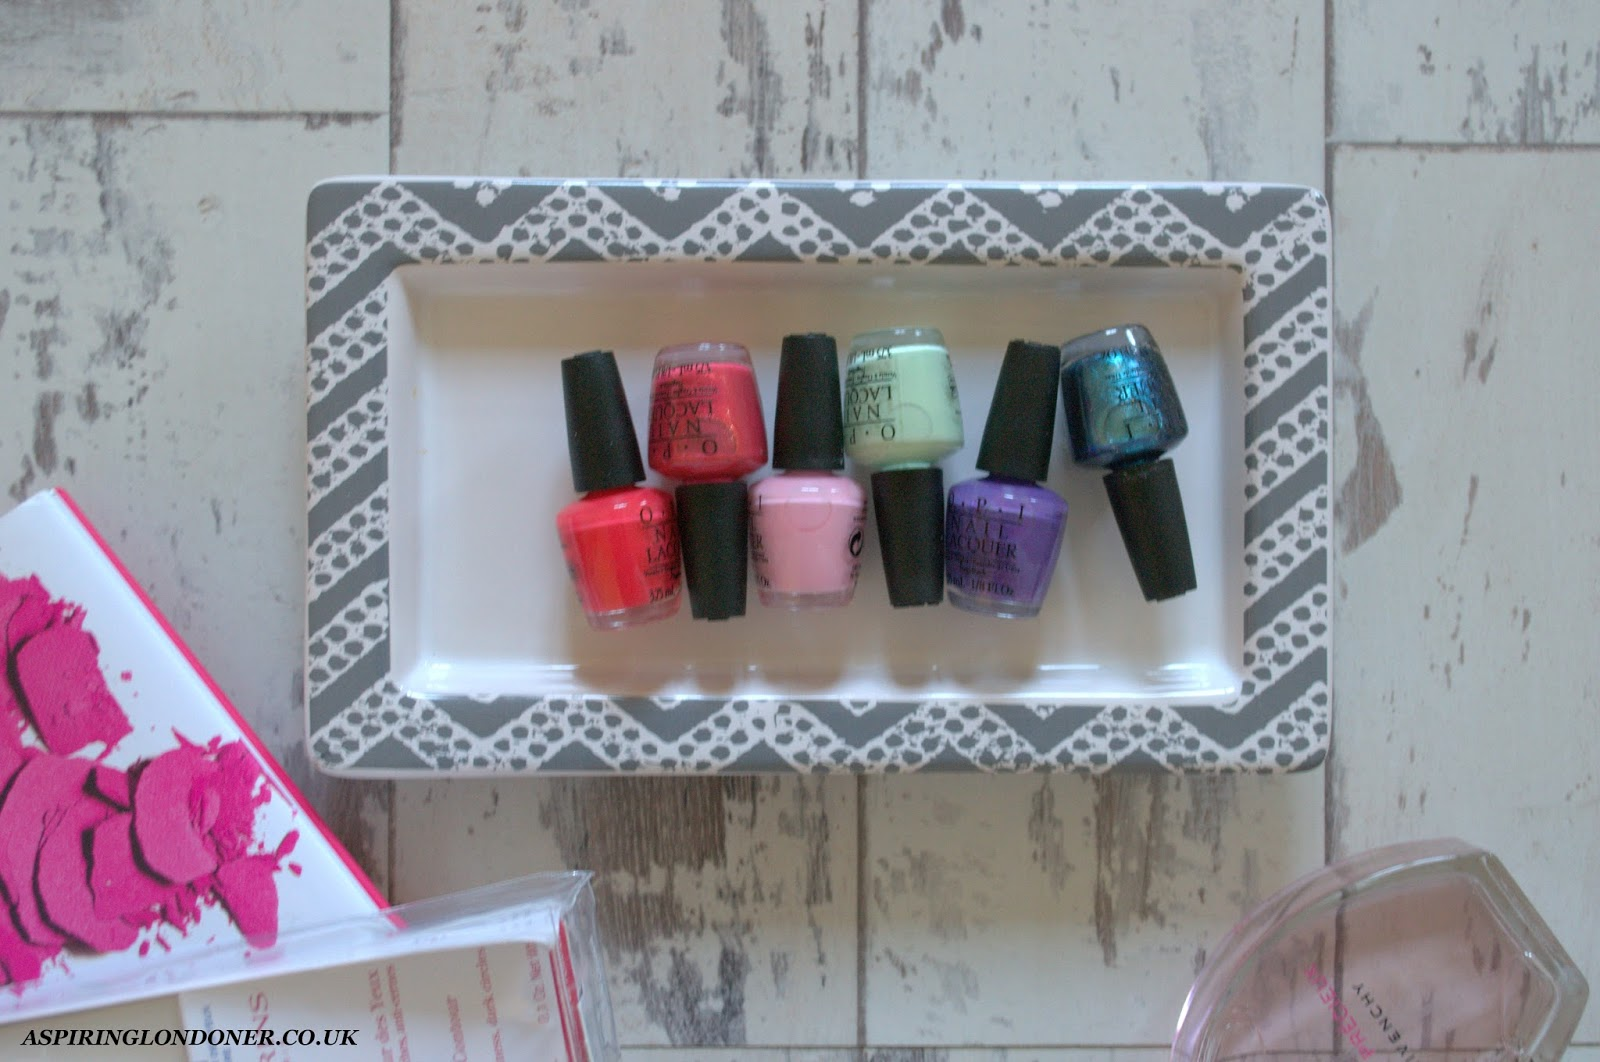 OPI Travel Hawaii Mini Collection - Aspiring Londoner